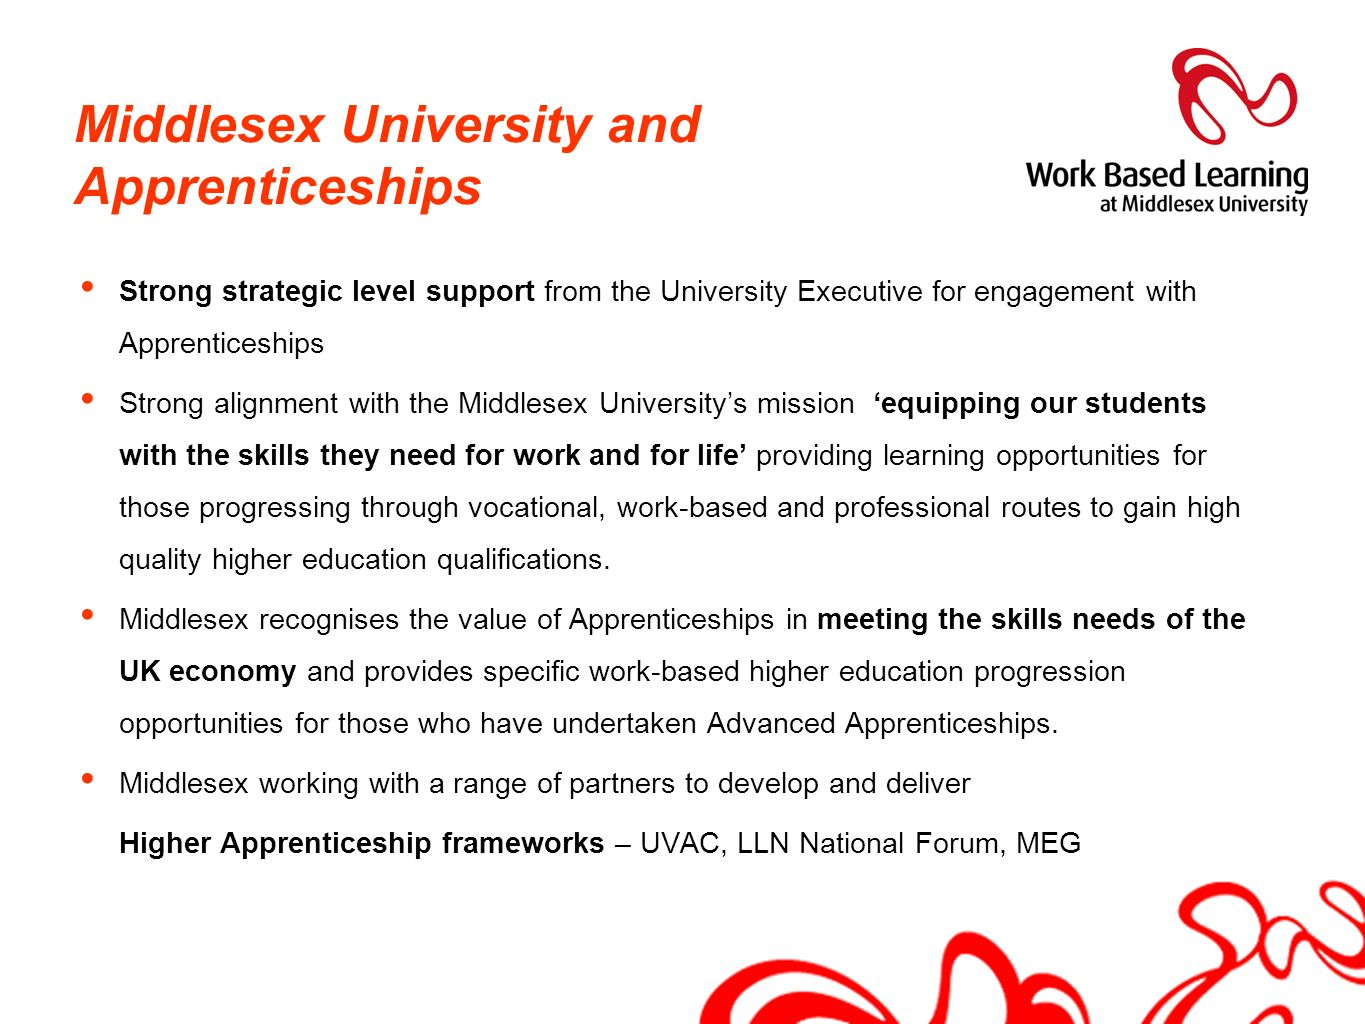 Middlesex University and Apprenticeships